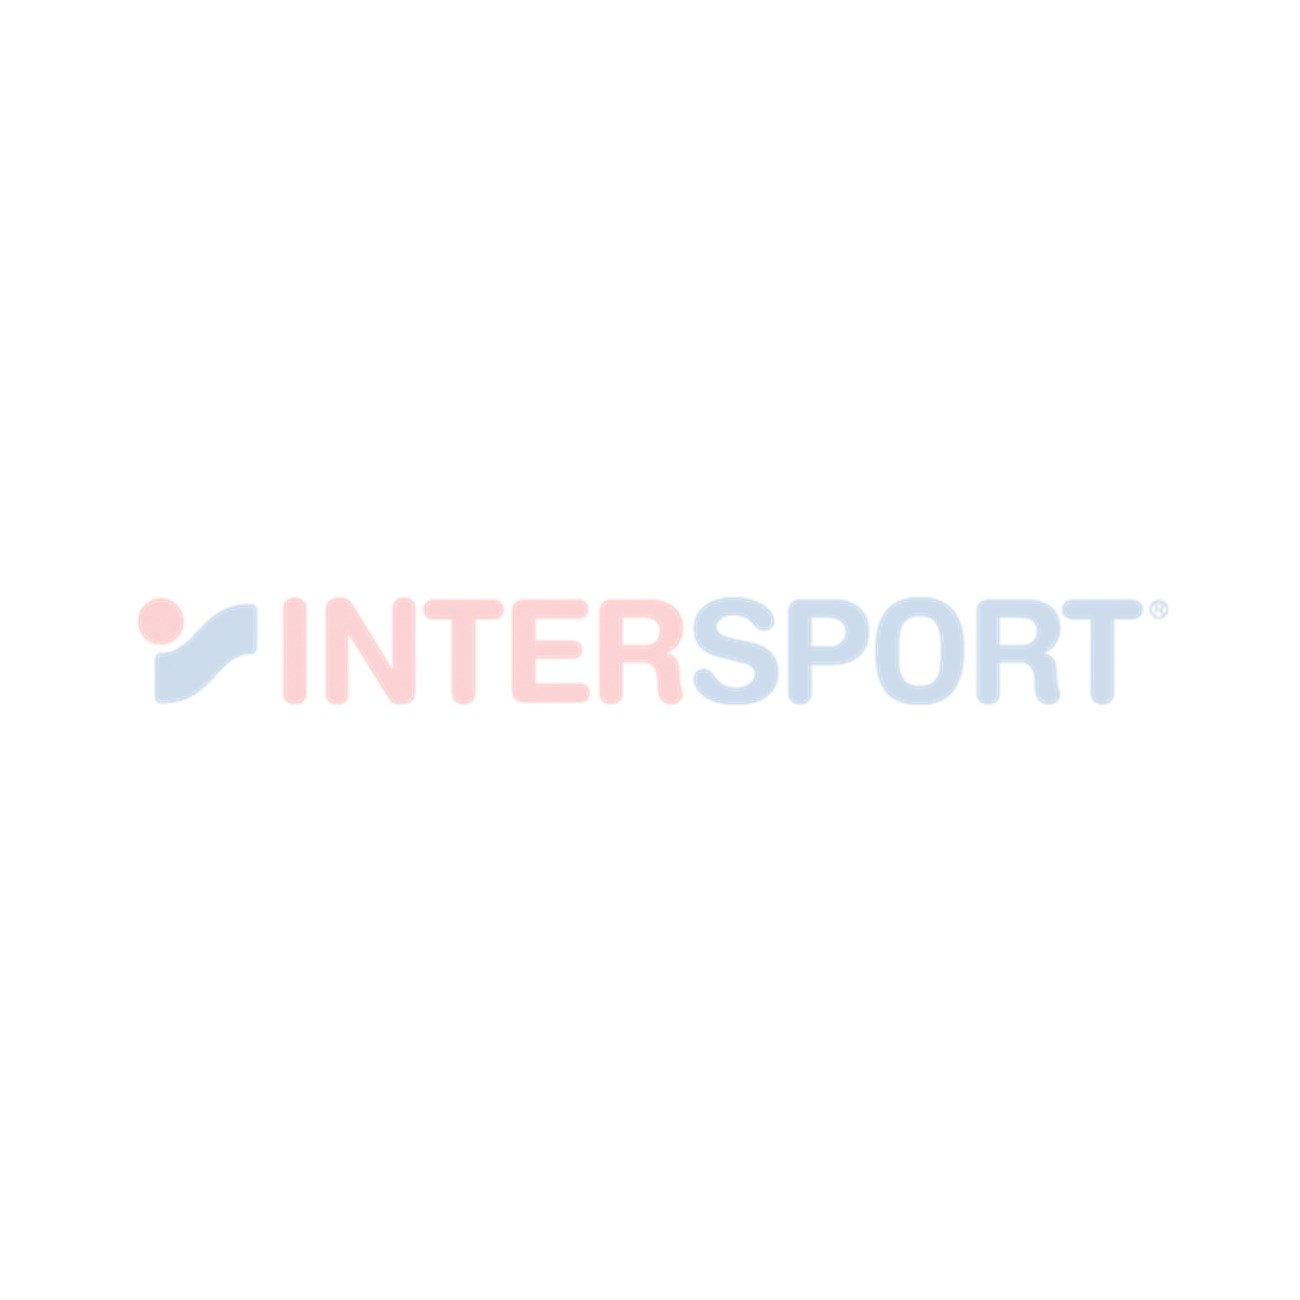 SEATOSUMMIT Τσάντα πλάτης ορειβασίας ULTRA-SIL NANO DAYPACK STS40-01023-0026 - INTERSPORT